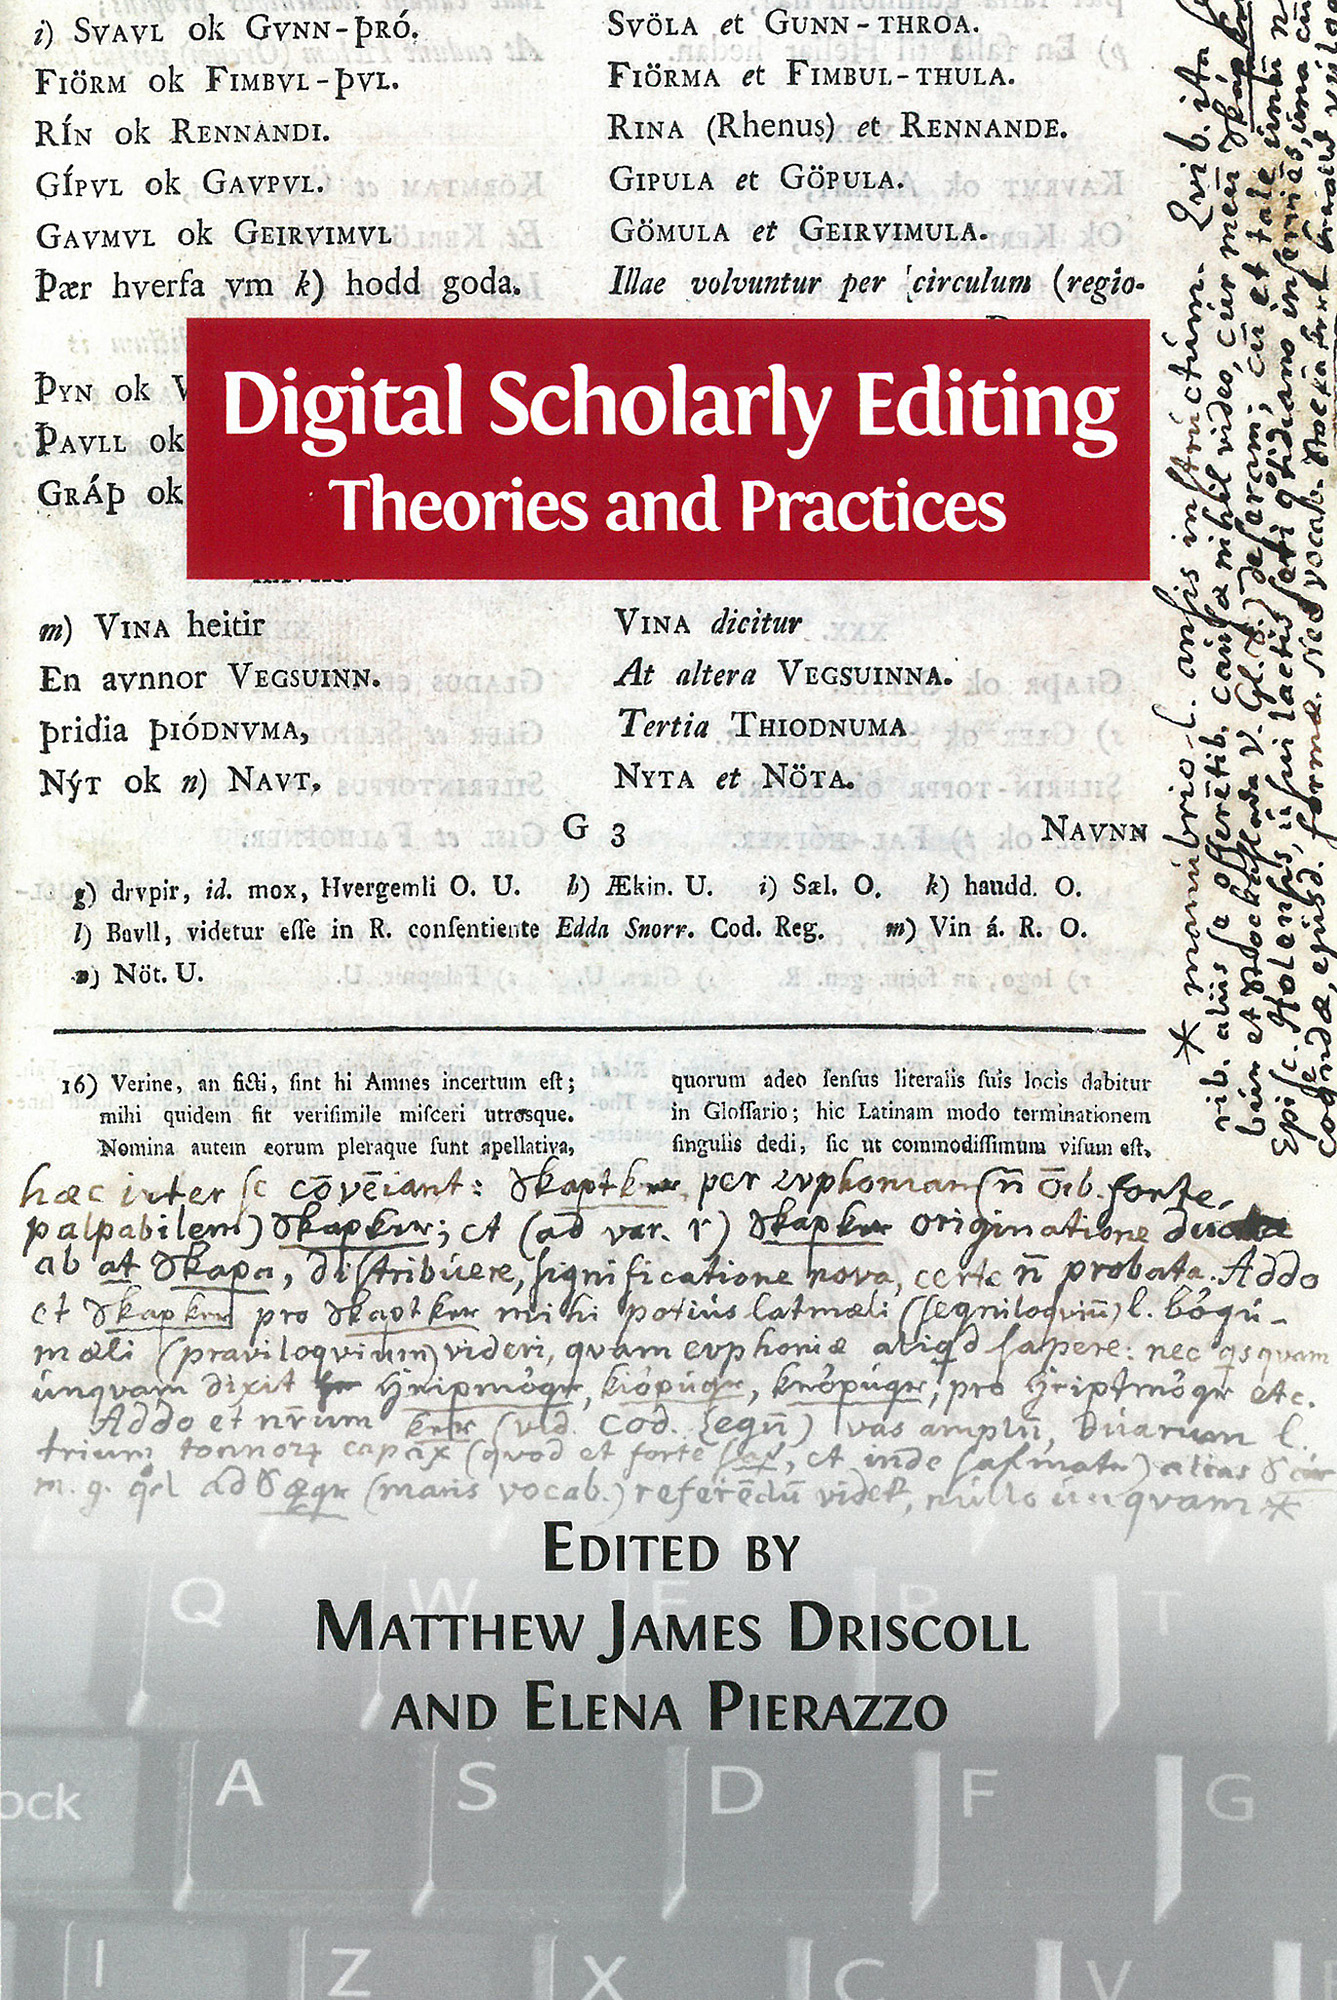 Digital scholarly editing (Cambridge: Open Book Publishers, 2016)